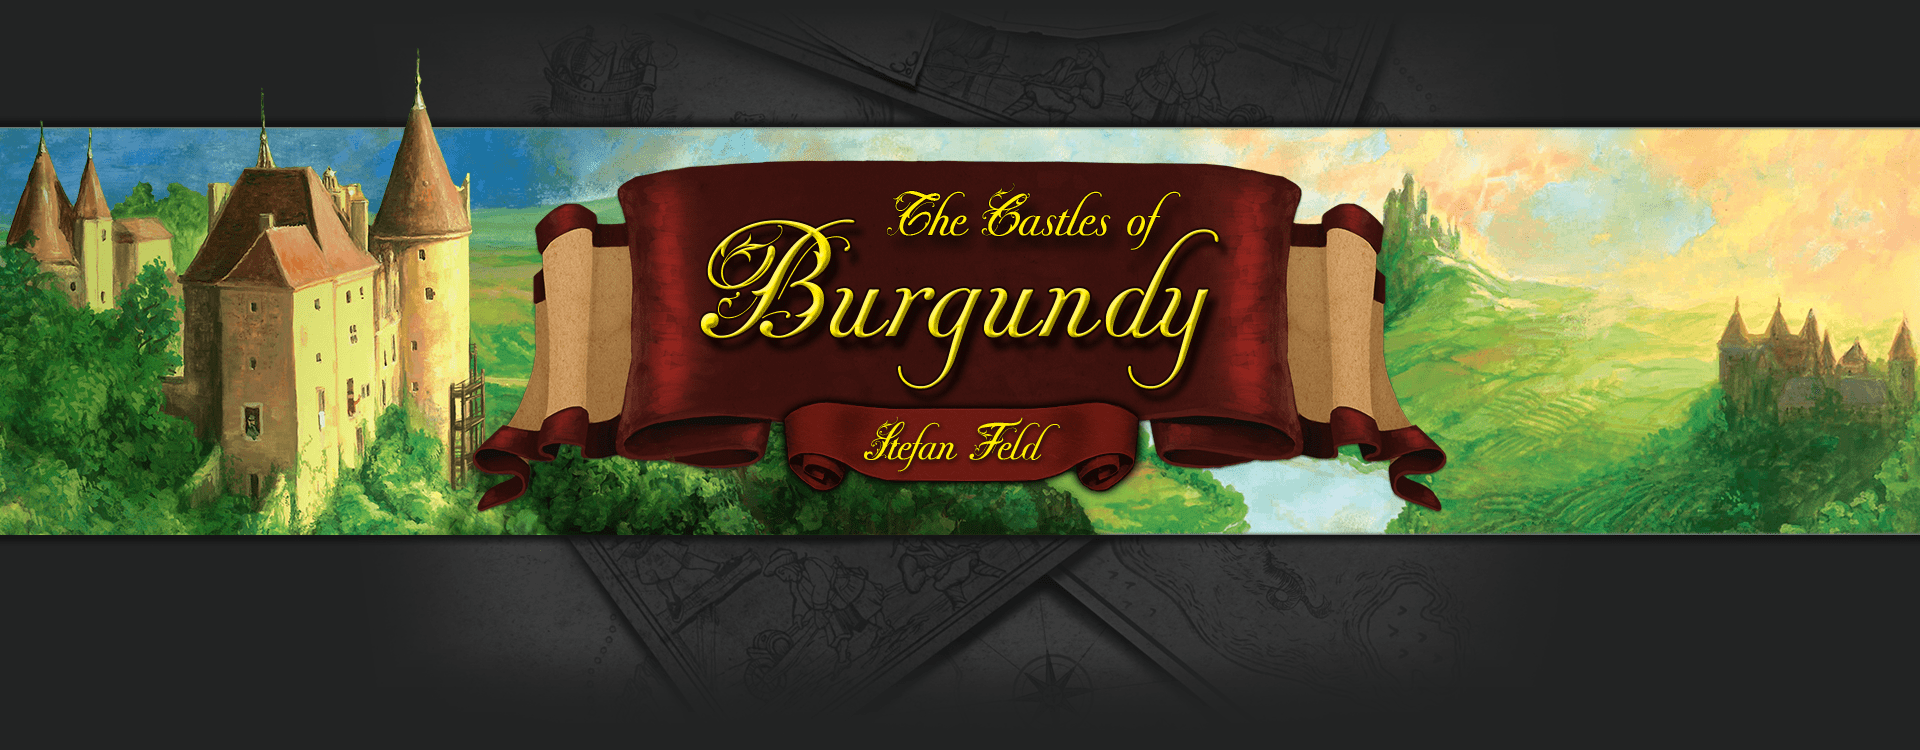 The Castles of Burgundy header image (4 player family euro game)